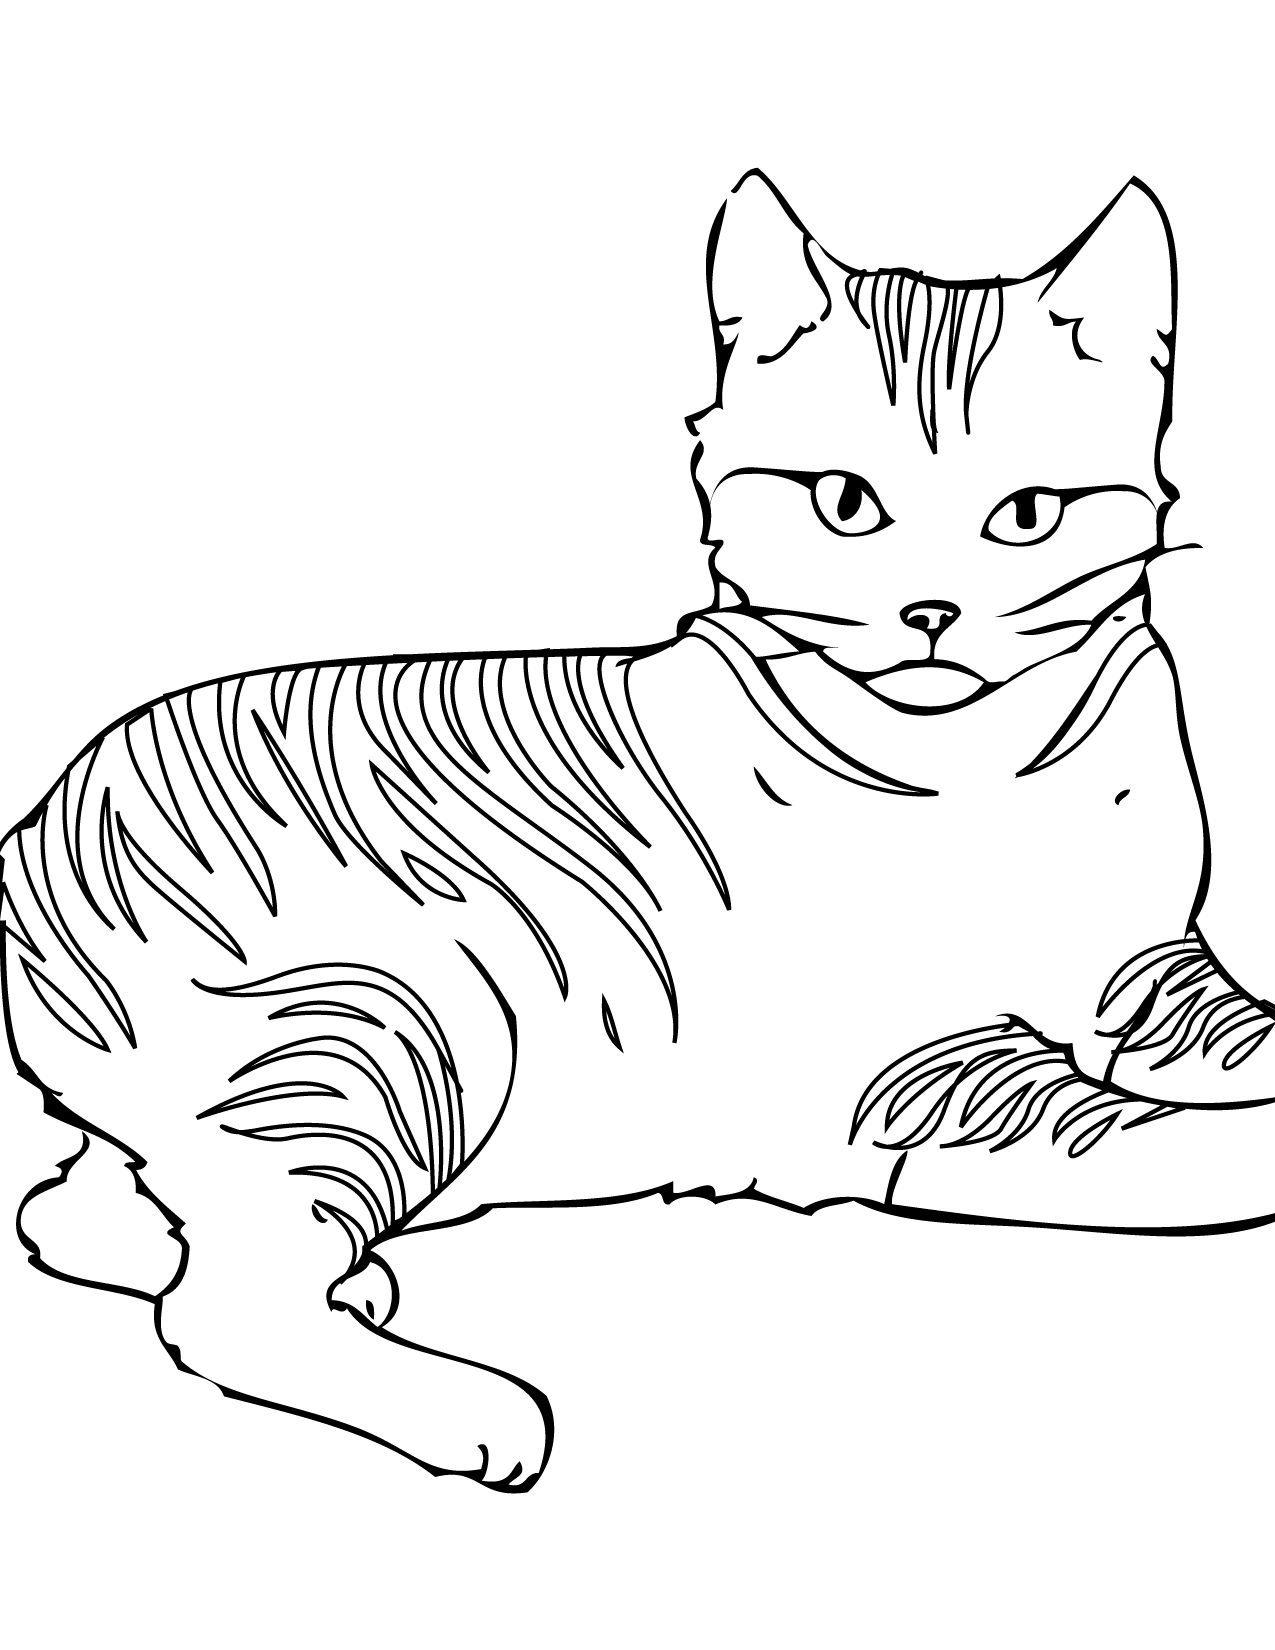 pixie bob coloring page handipoints